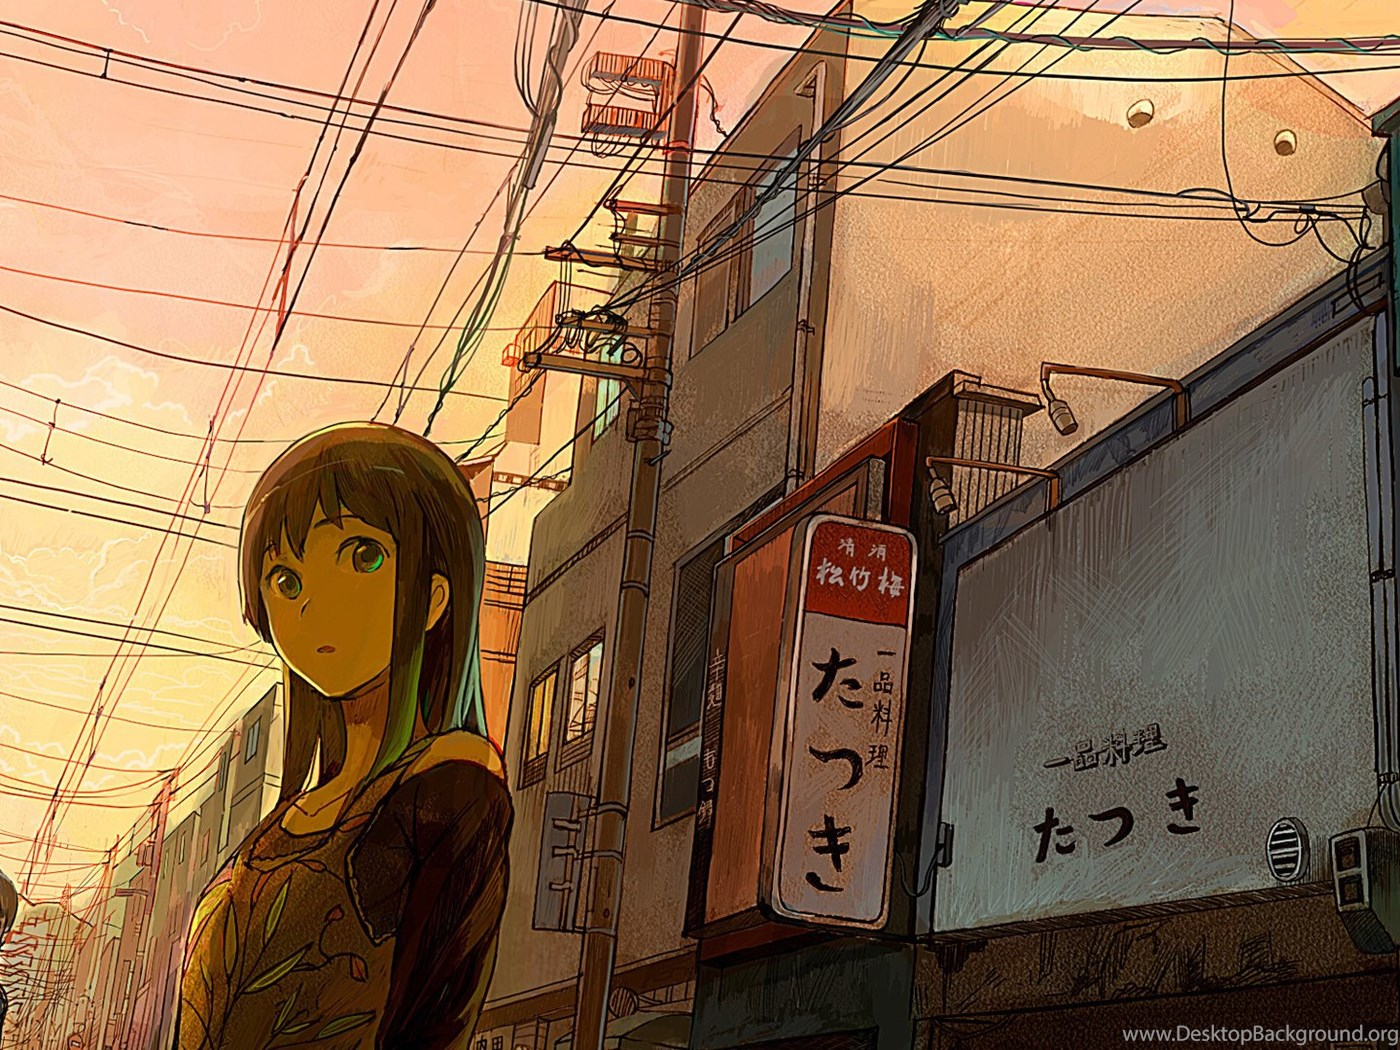 1920x1080 City Wire Japan Street View Wallpapers And Pictures Desktop Background